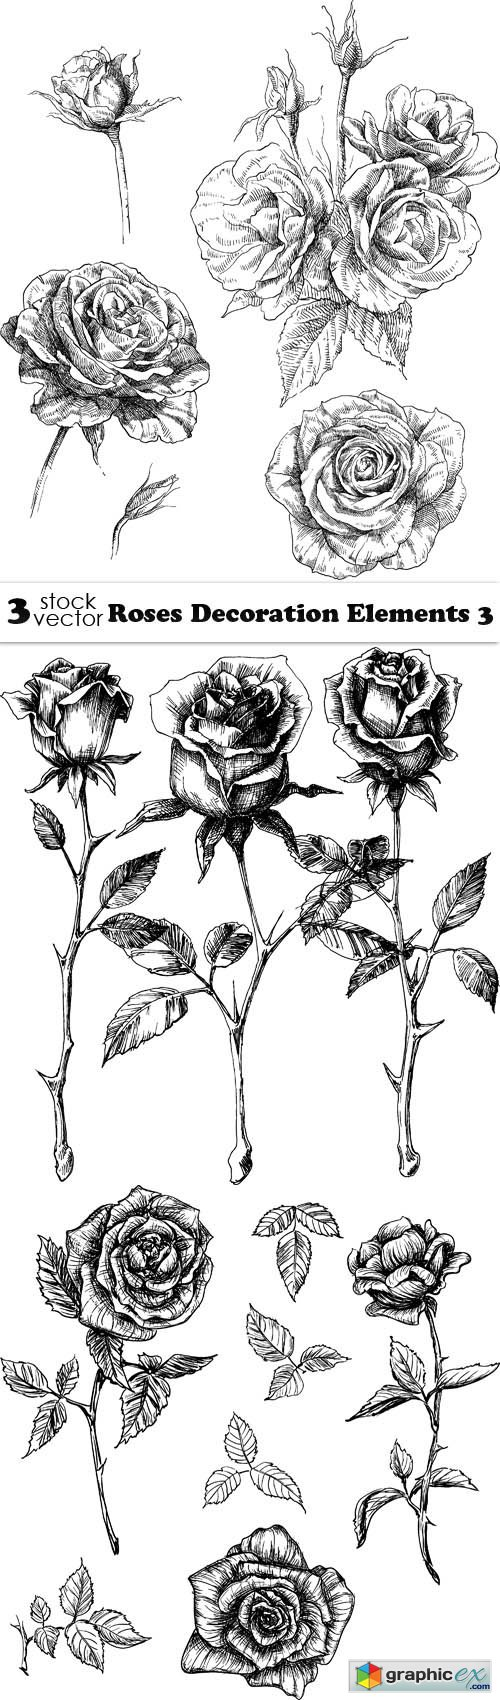 Roses Decoration Elements 3